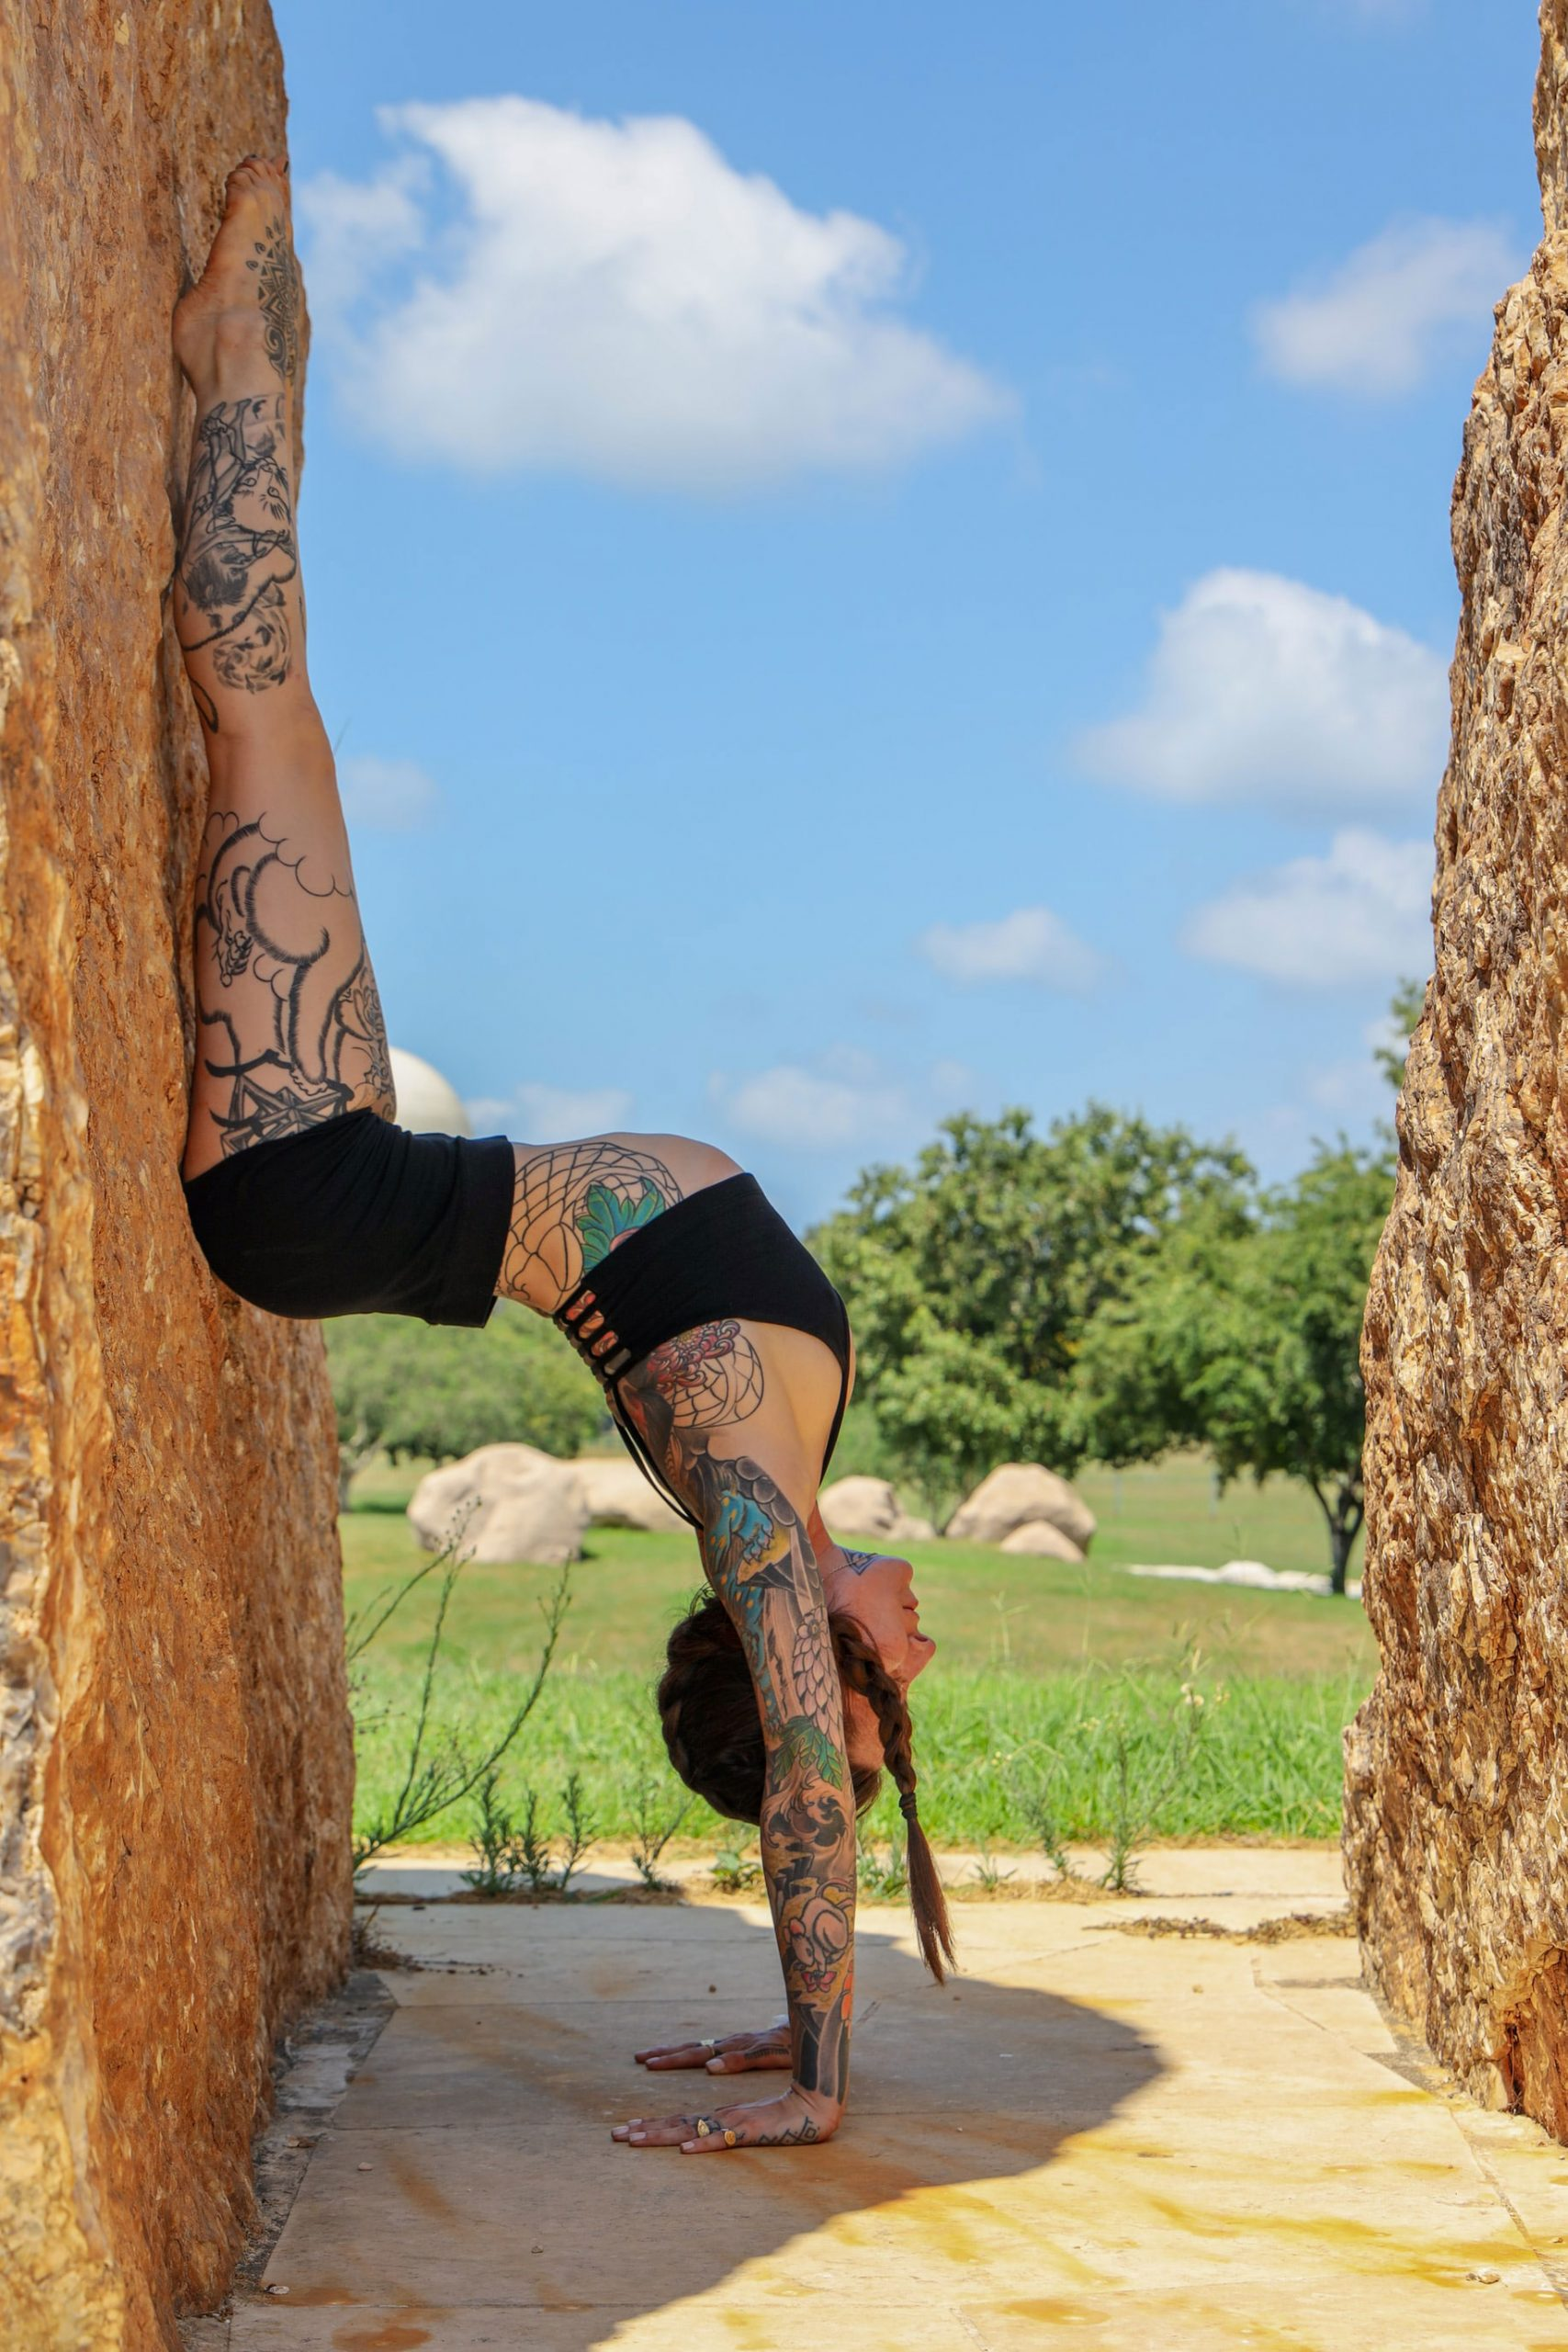 Tattoos have been rebelling against an upside down world since ancient times.